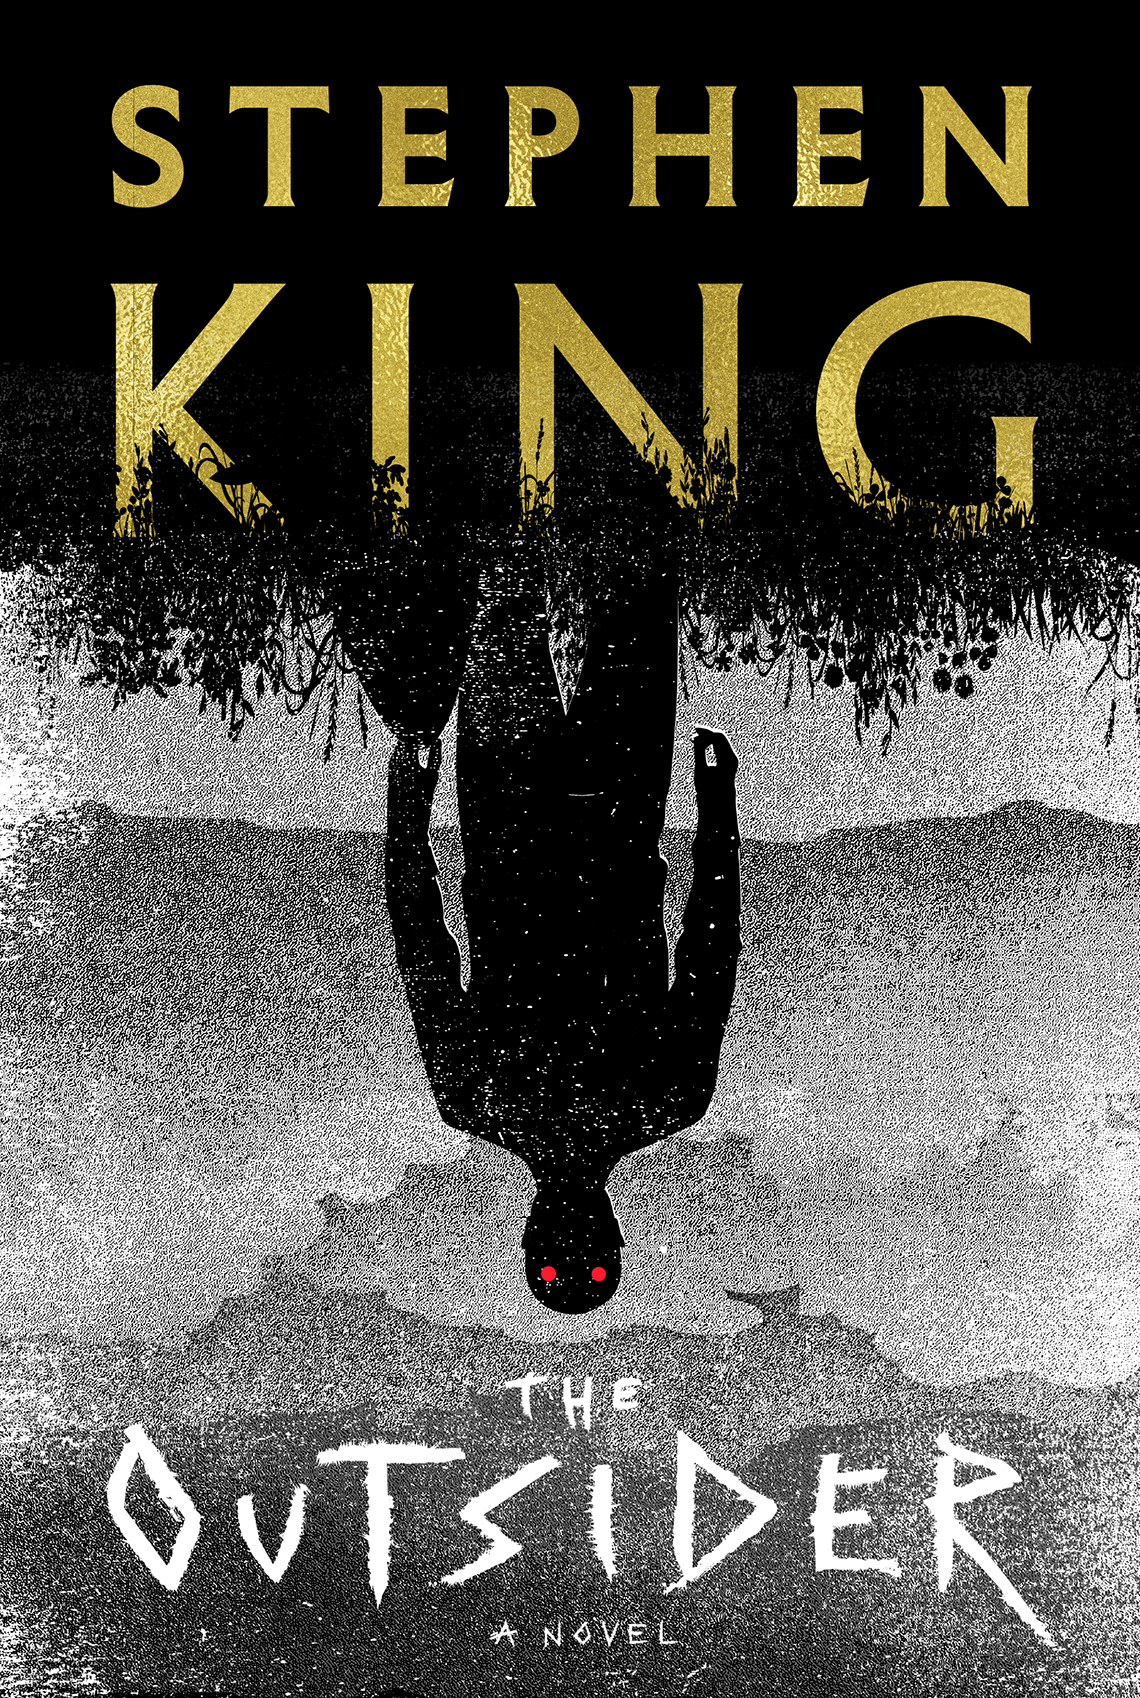 book cover, text reads: Stephen King, The Outsider, A Novel